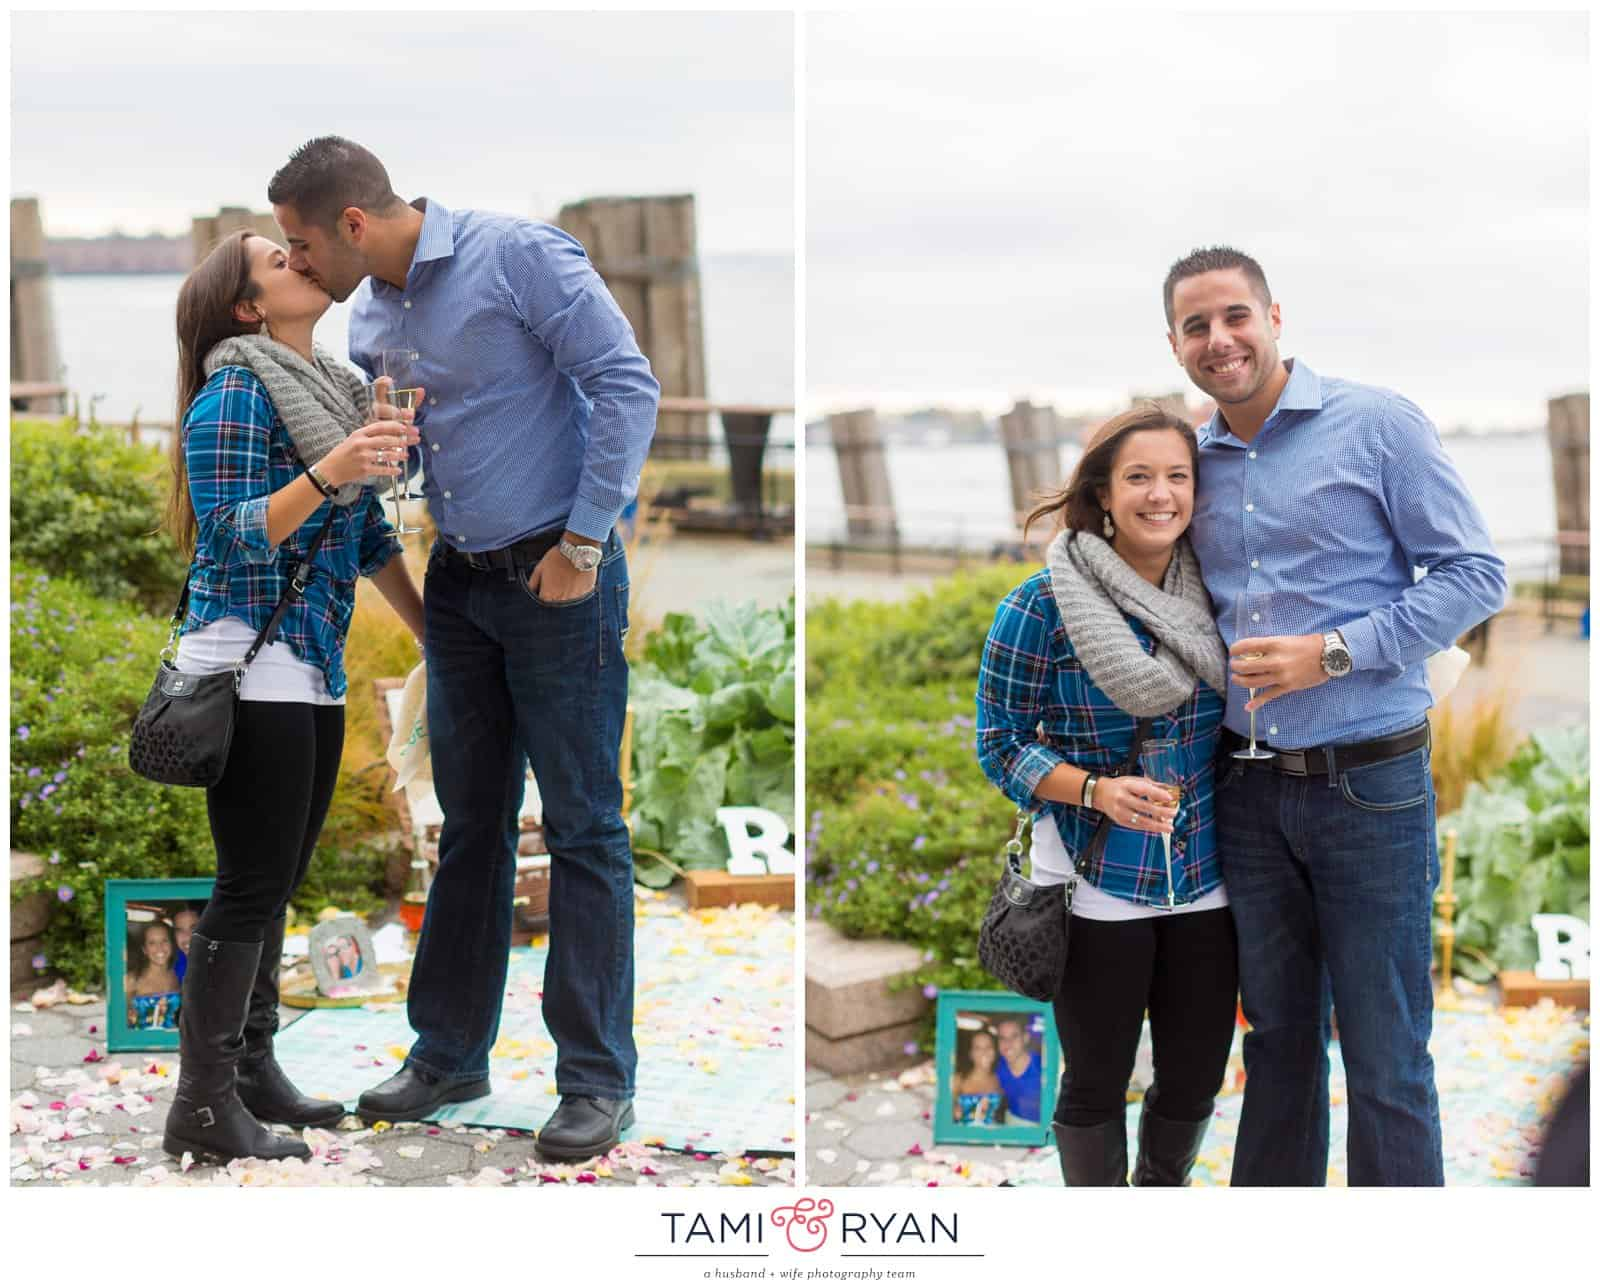 Rocco-Kait-New-York-City-Battery-Park-Proposal-Surprise-0079